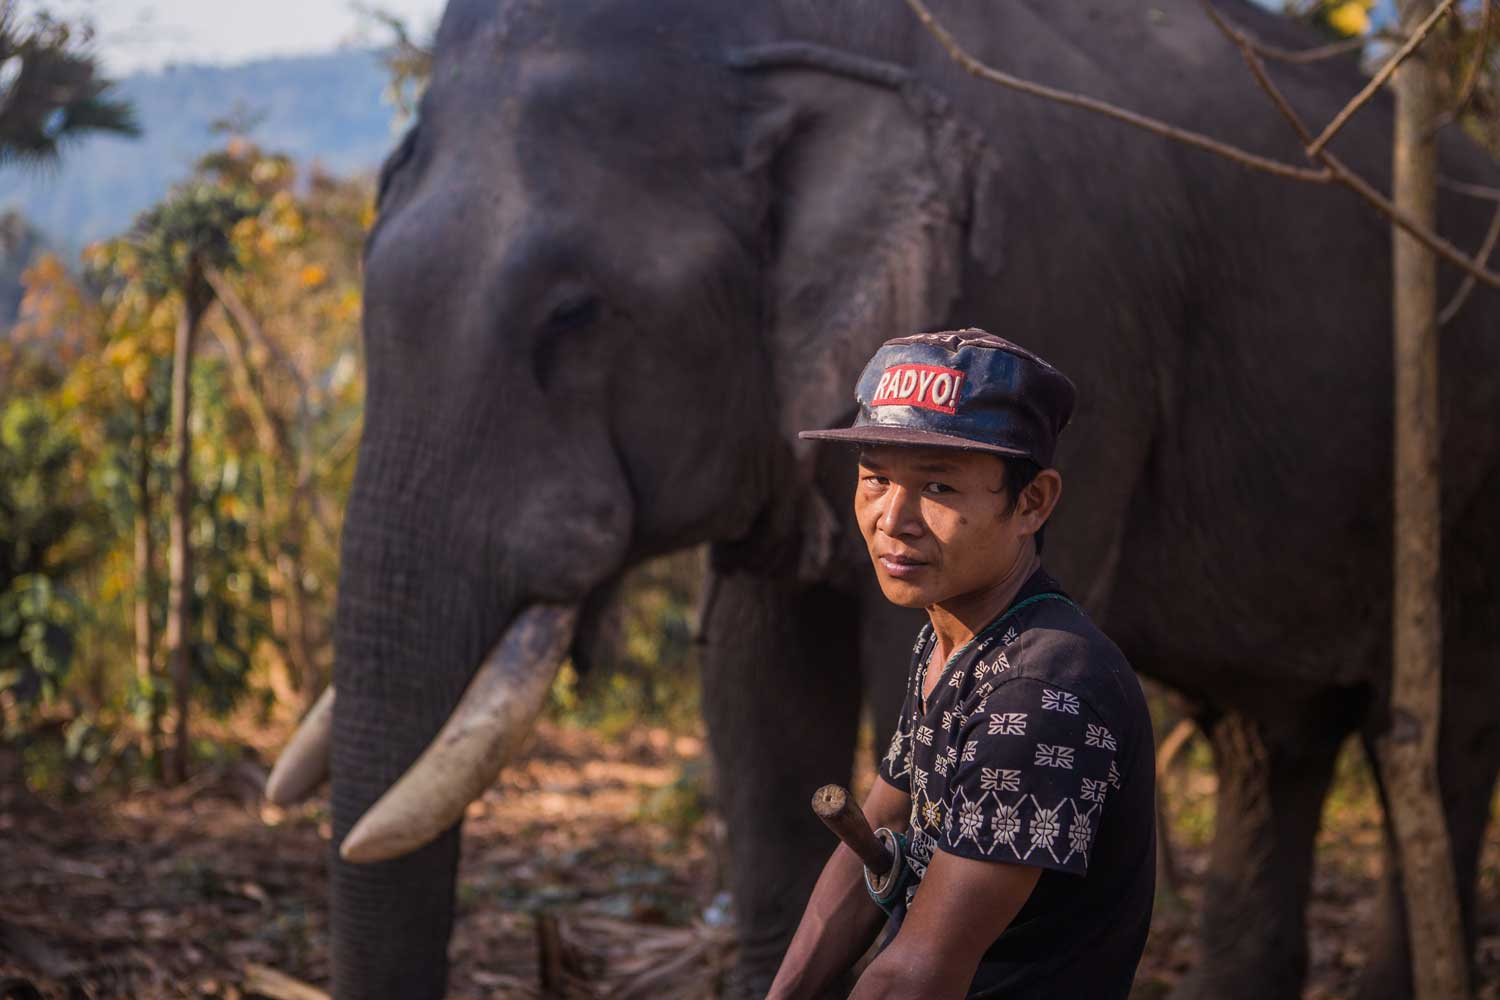 A man standing in front of an elephant